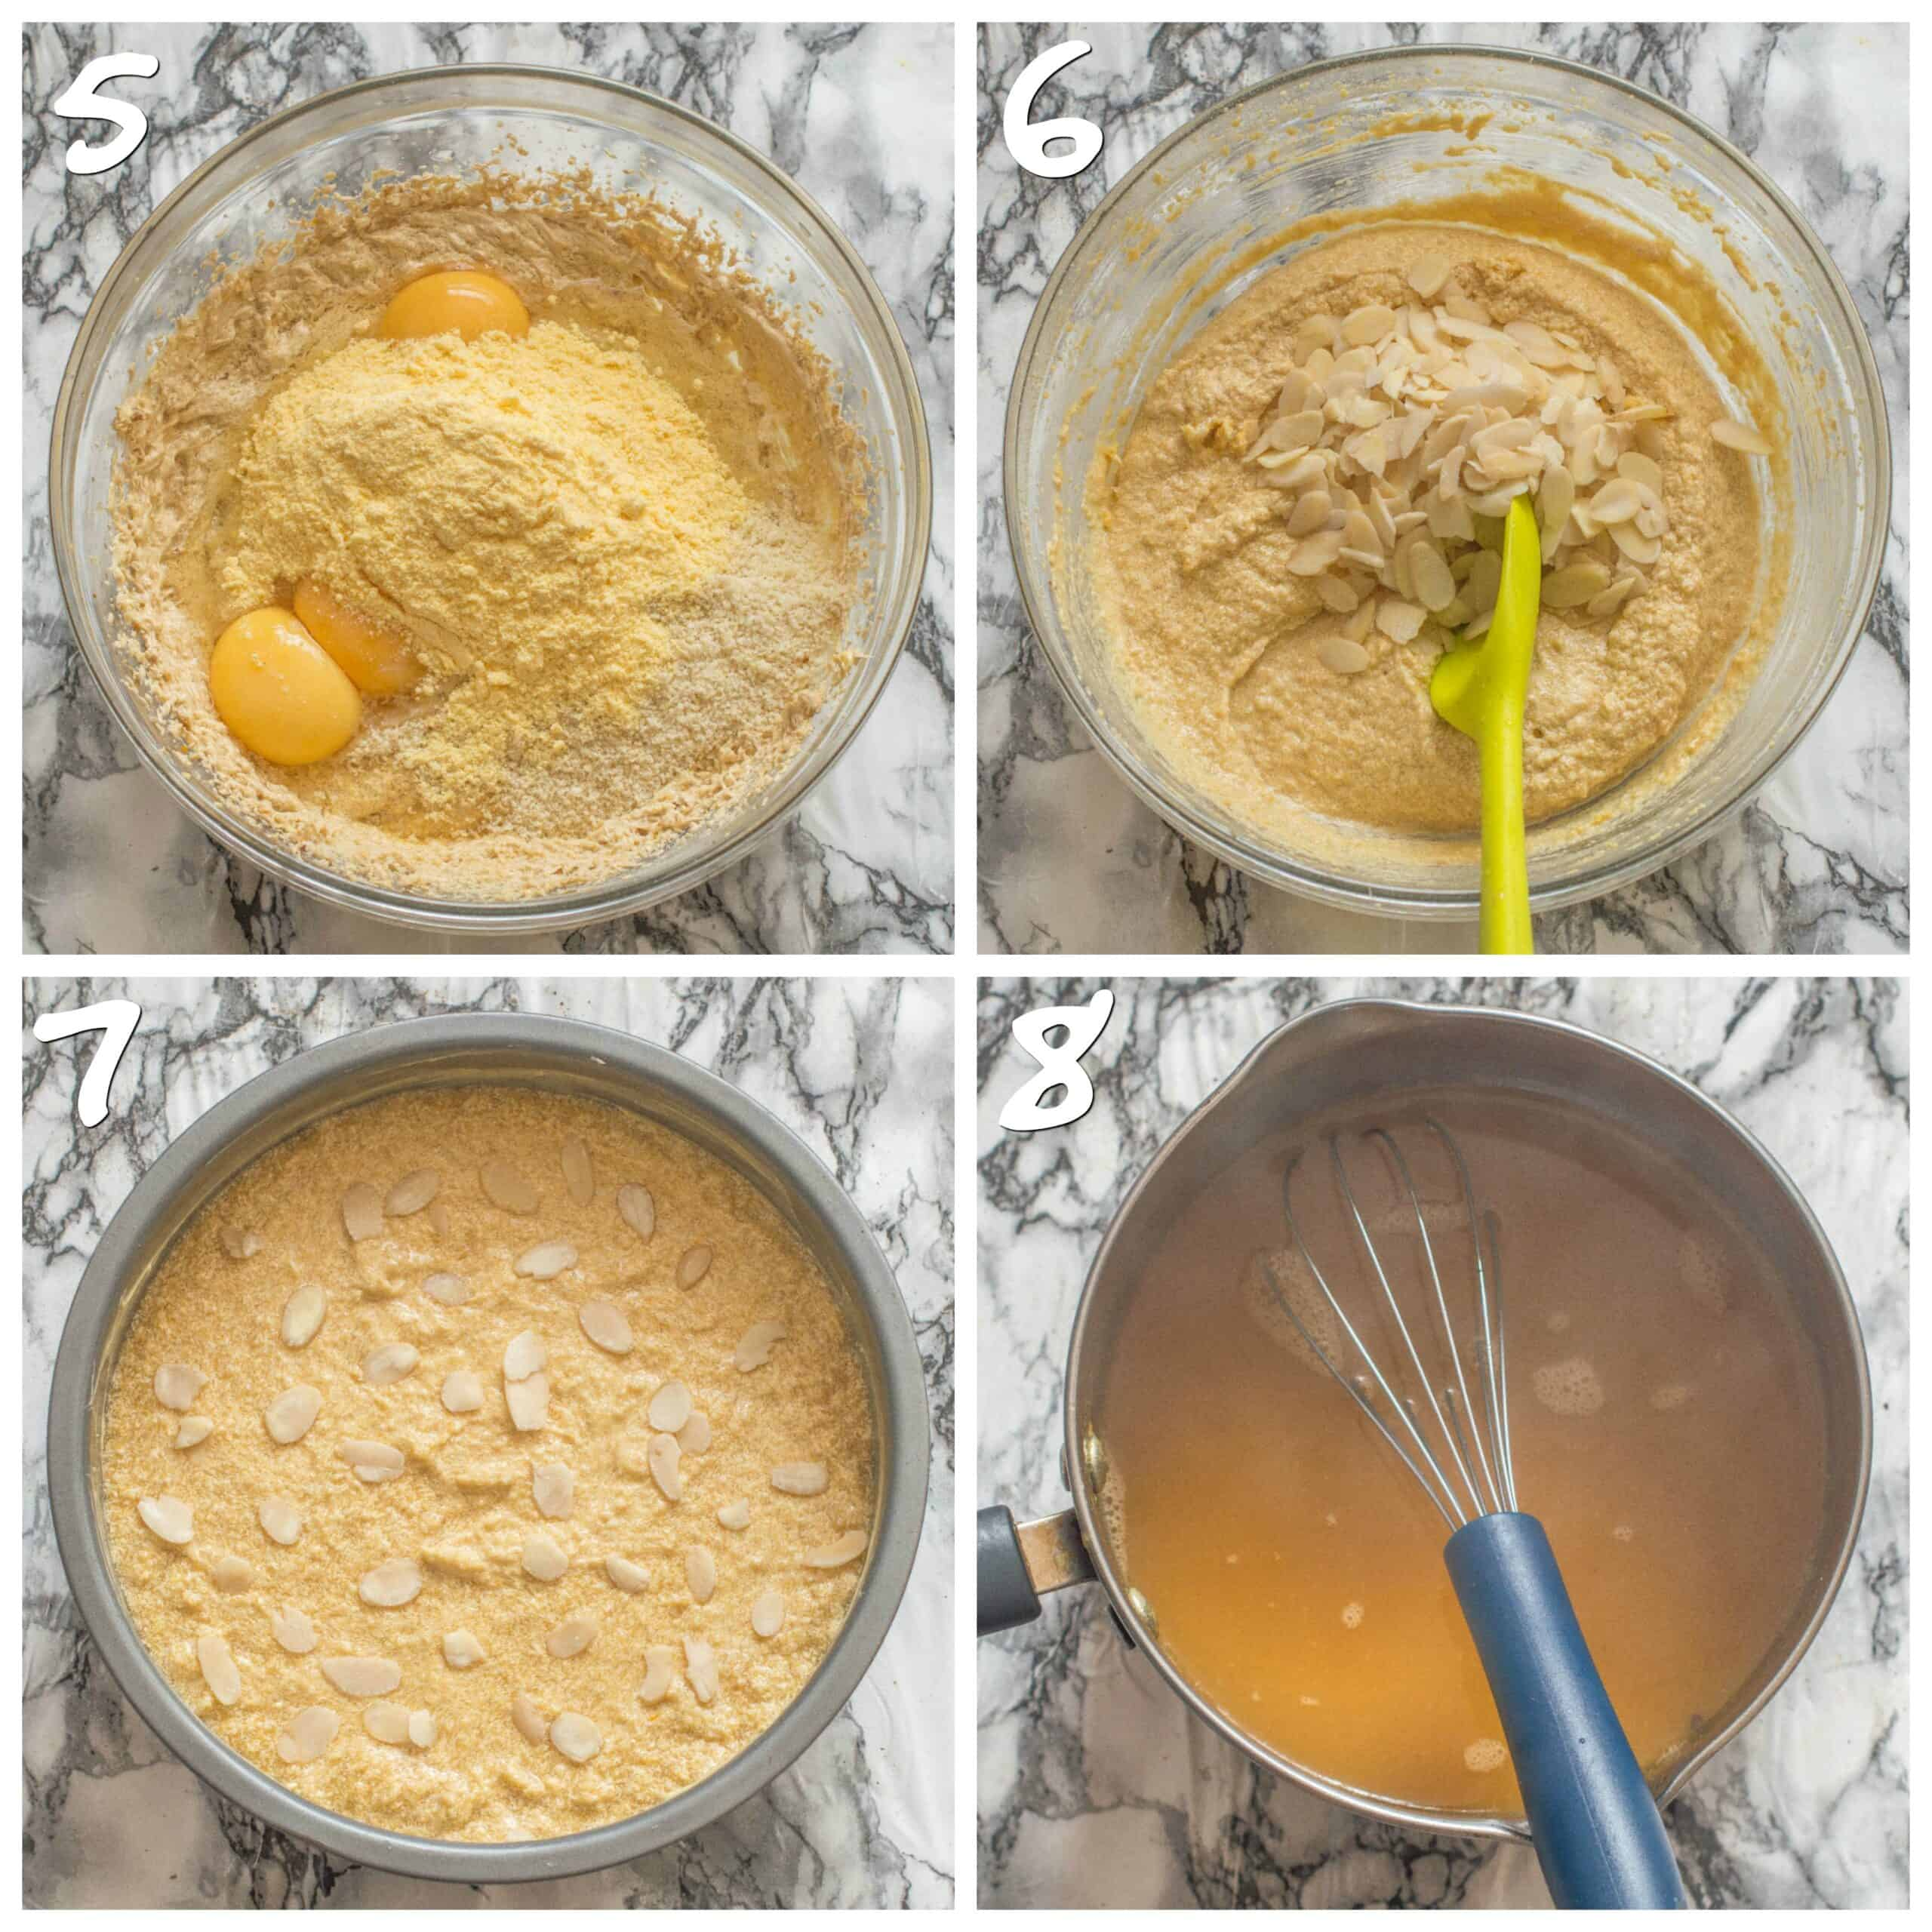 steps 5-8 mixing the cake batter